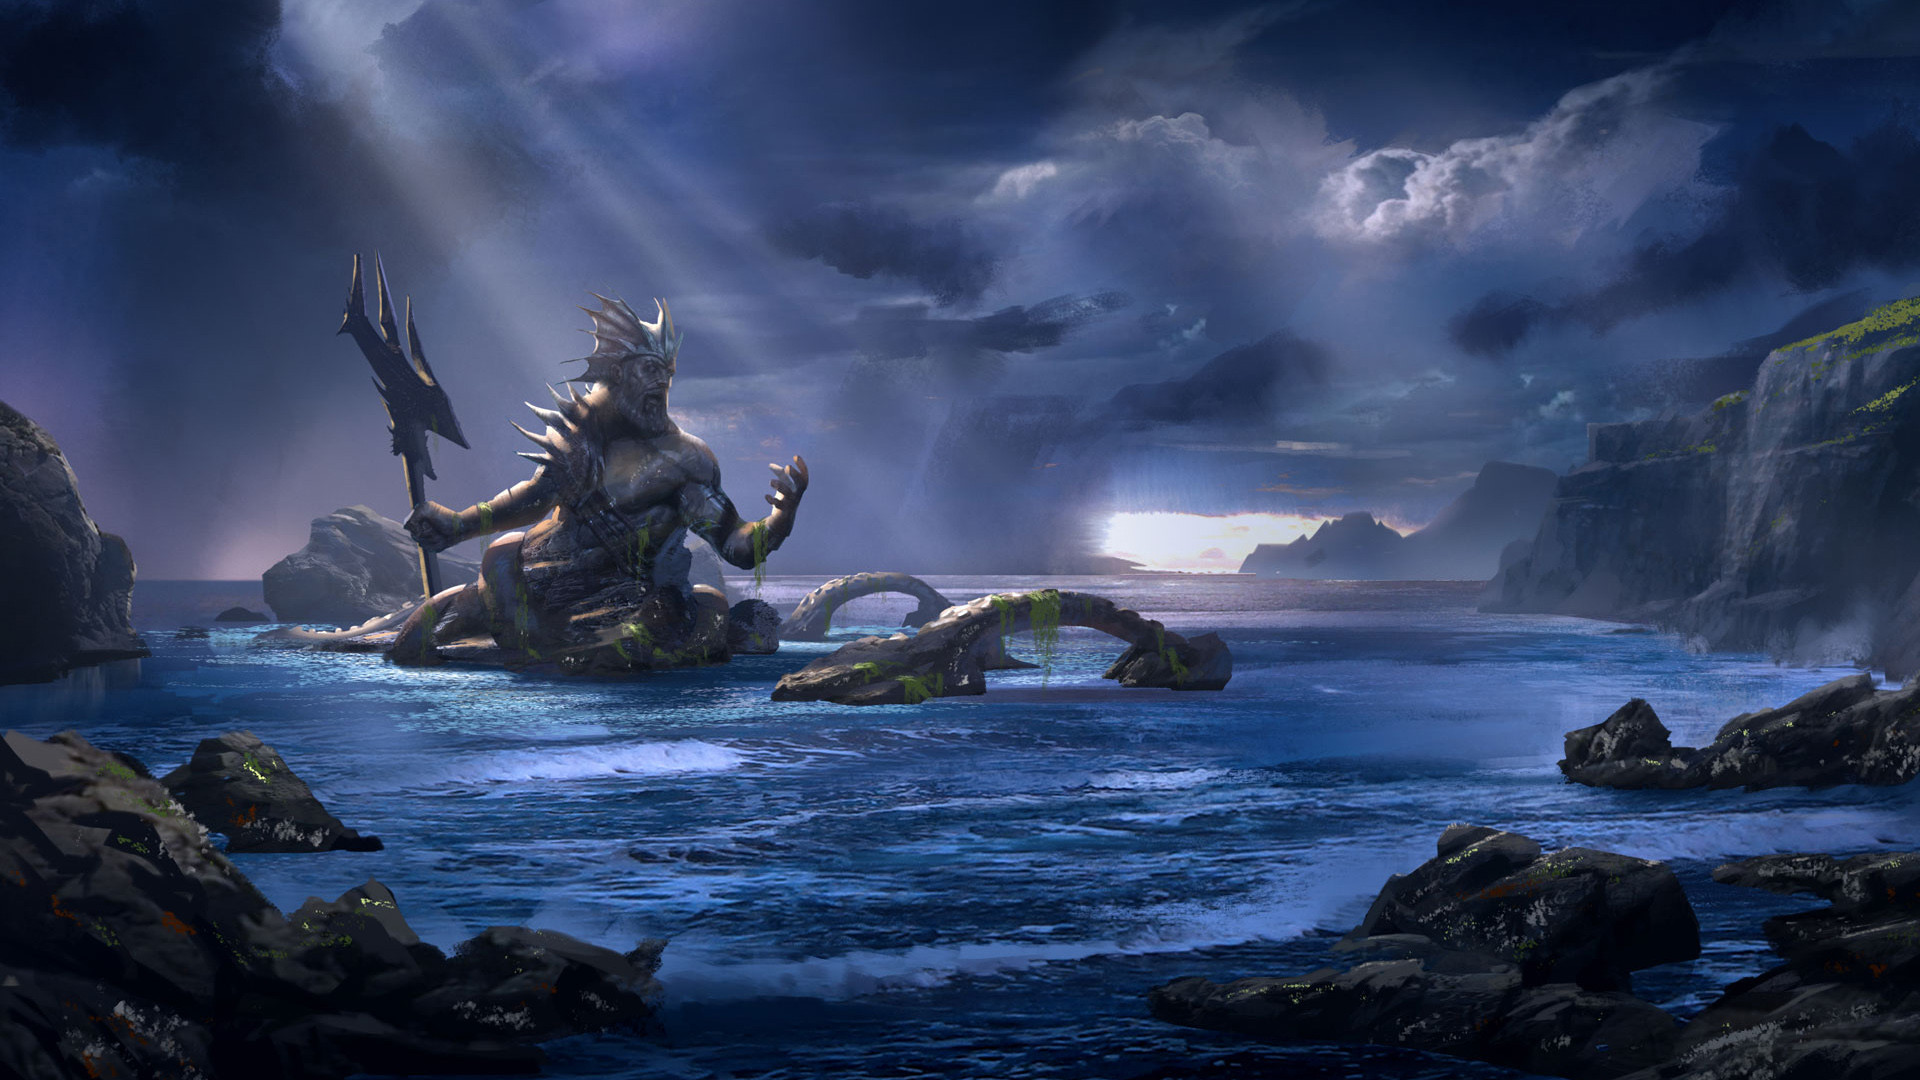 Download Lord Shiva Hd Wallpapers 1080P For Desktop Download